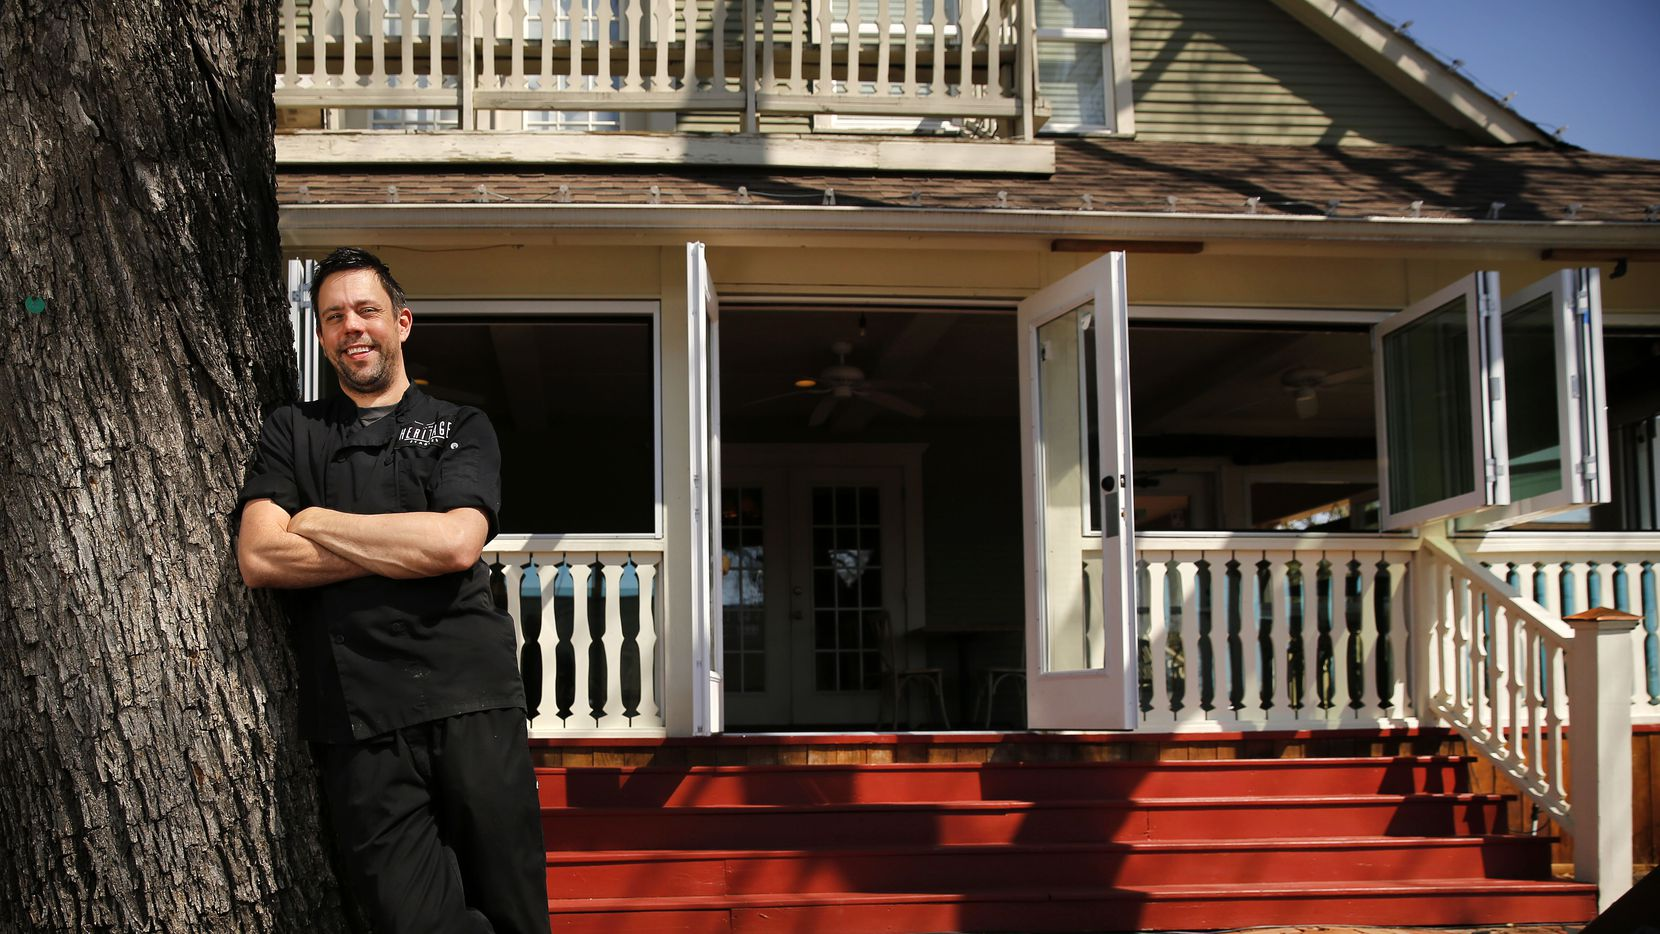 You want to hear war stories about owning a restaurant during a pandemic? Rich Vana is reopening The Heritage Table in downtown Frisco in mid-April 2021. But not before he closed his beloved restaurant, launched a sandwich shop and closed the sandwich shop.